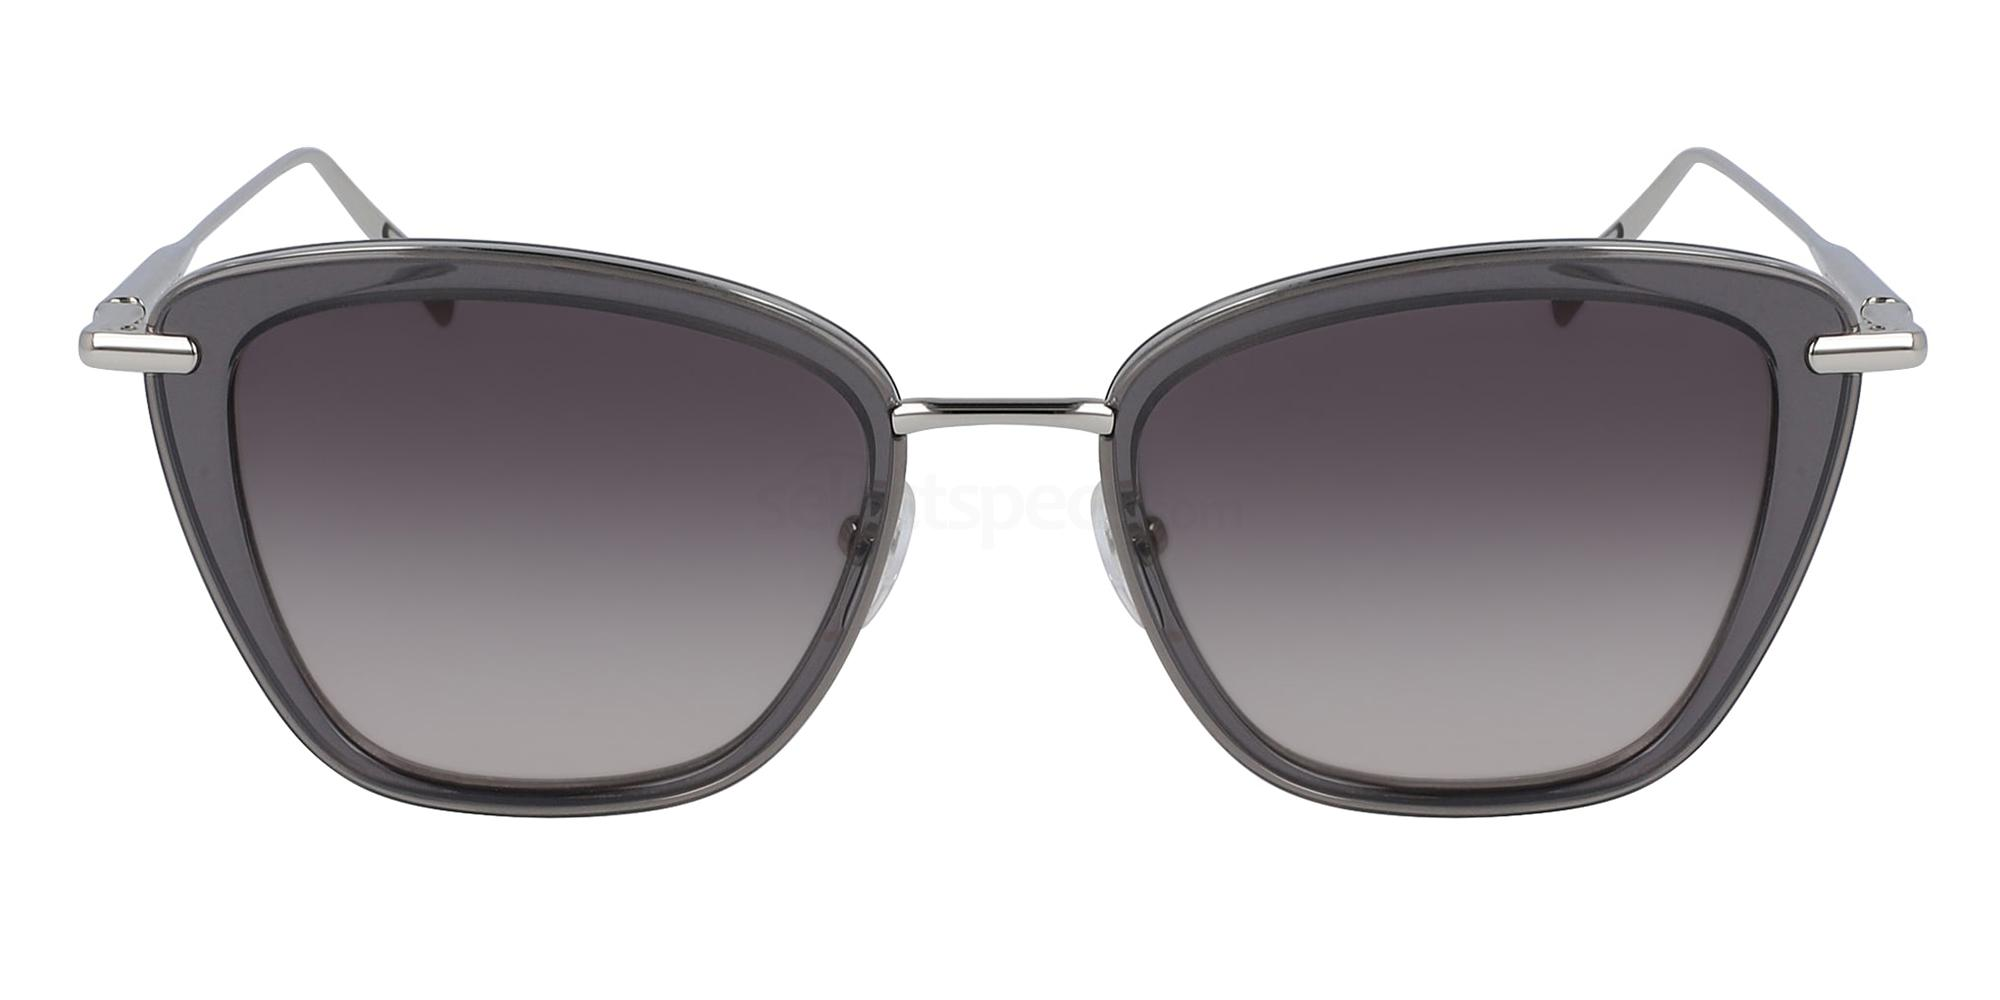 036 LO638S Sunglasses, LONGCHAMP